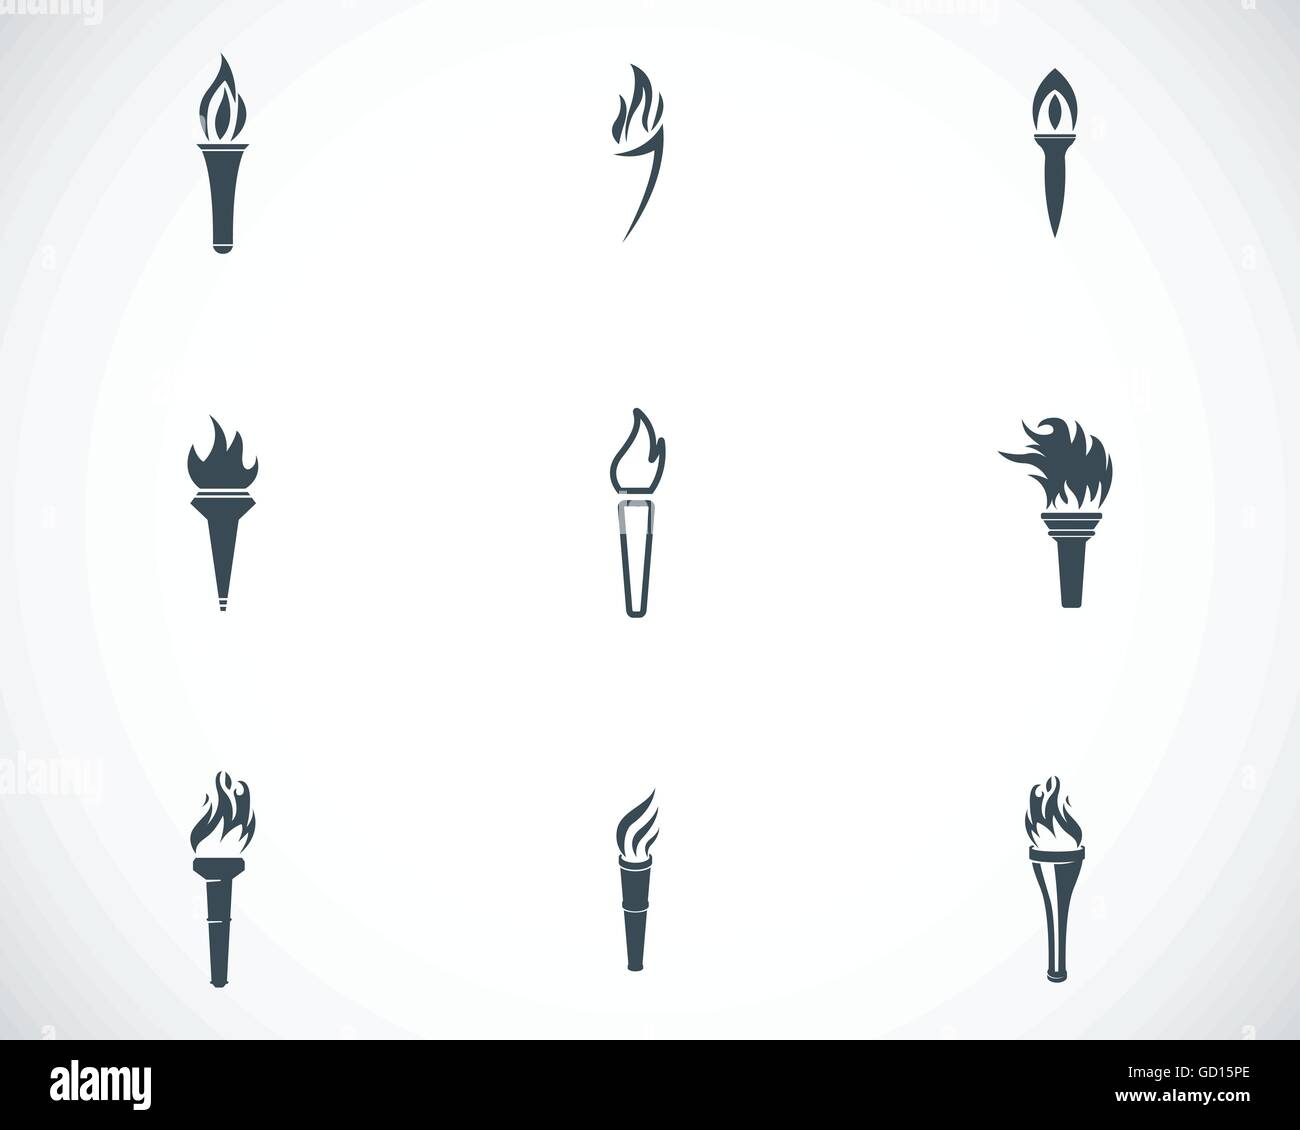 Vector black torch icons set - Stock Vector